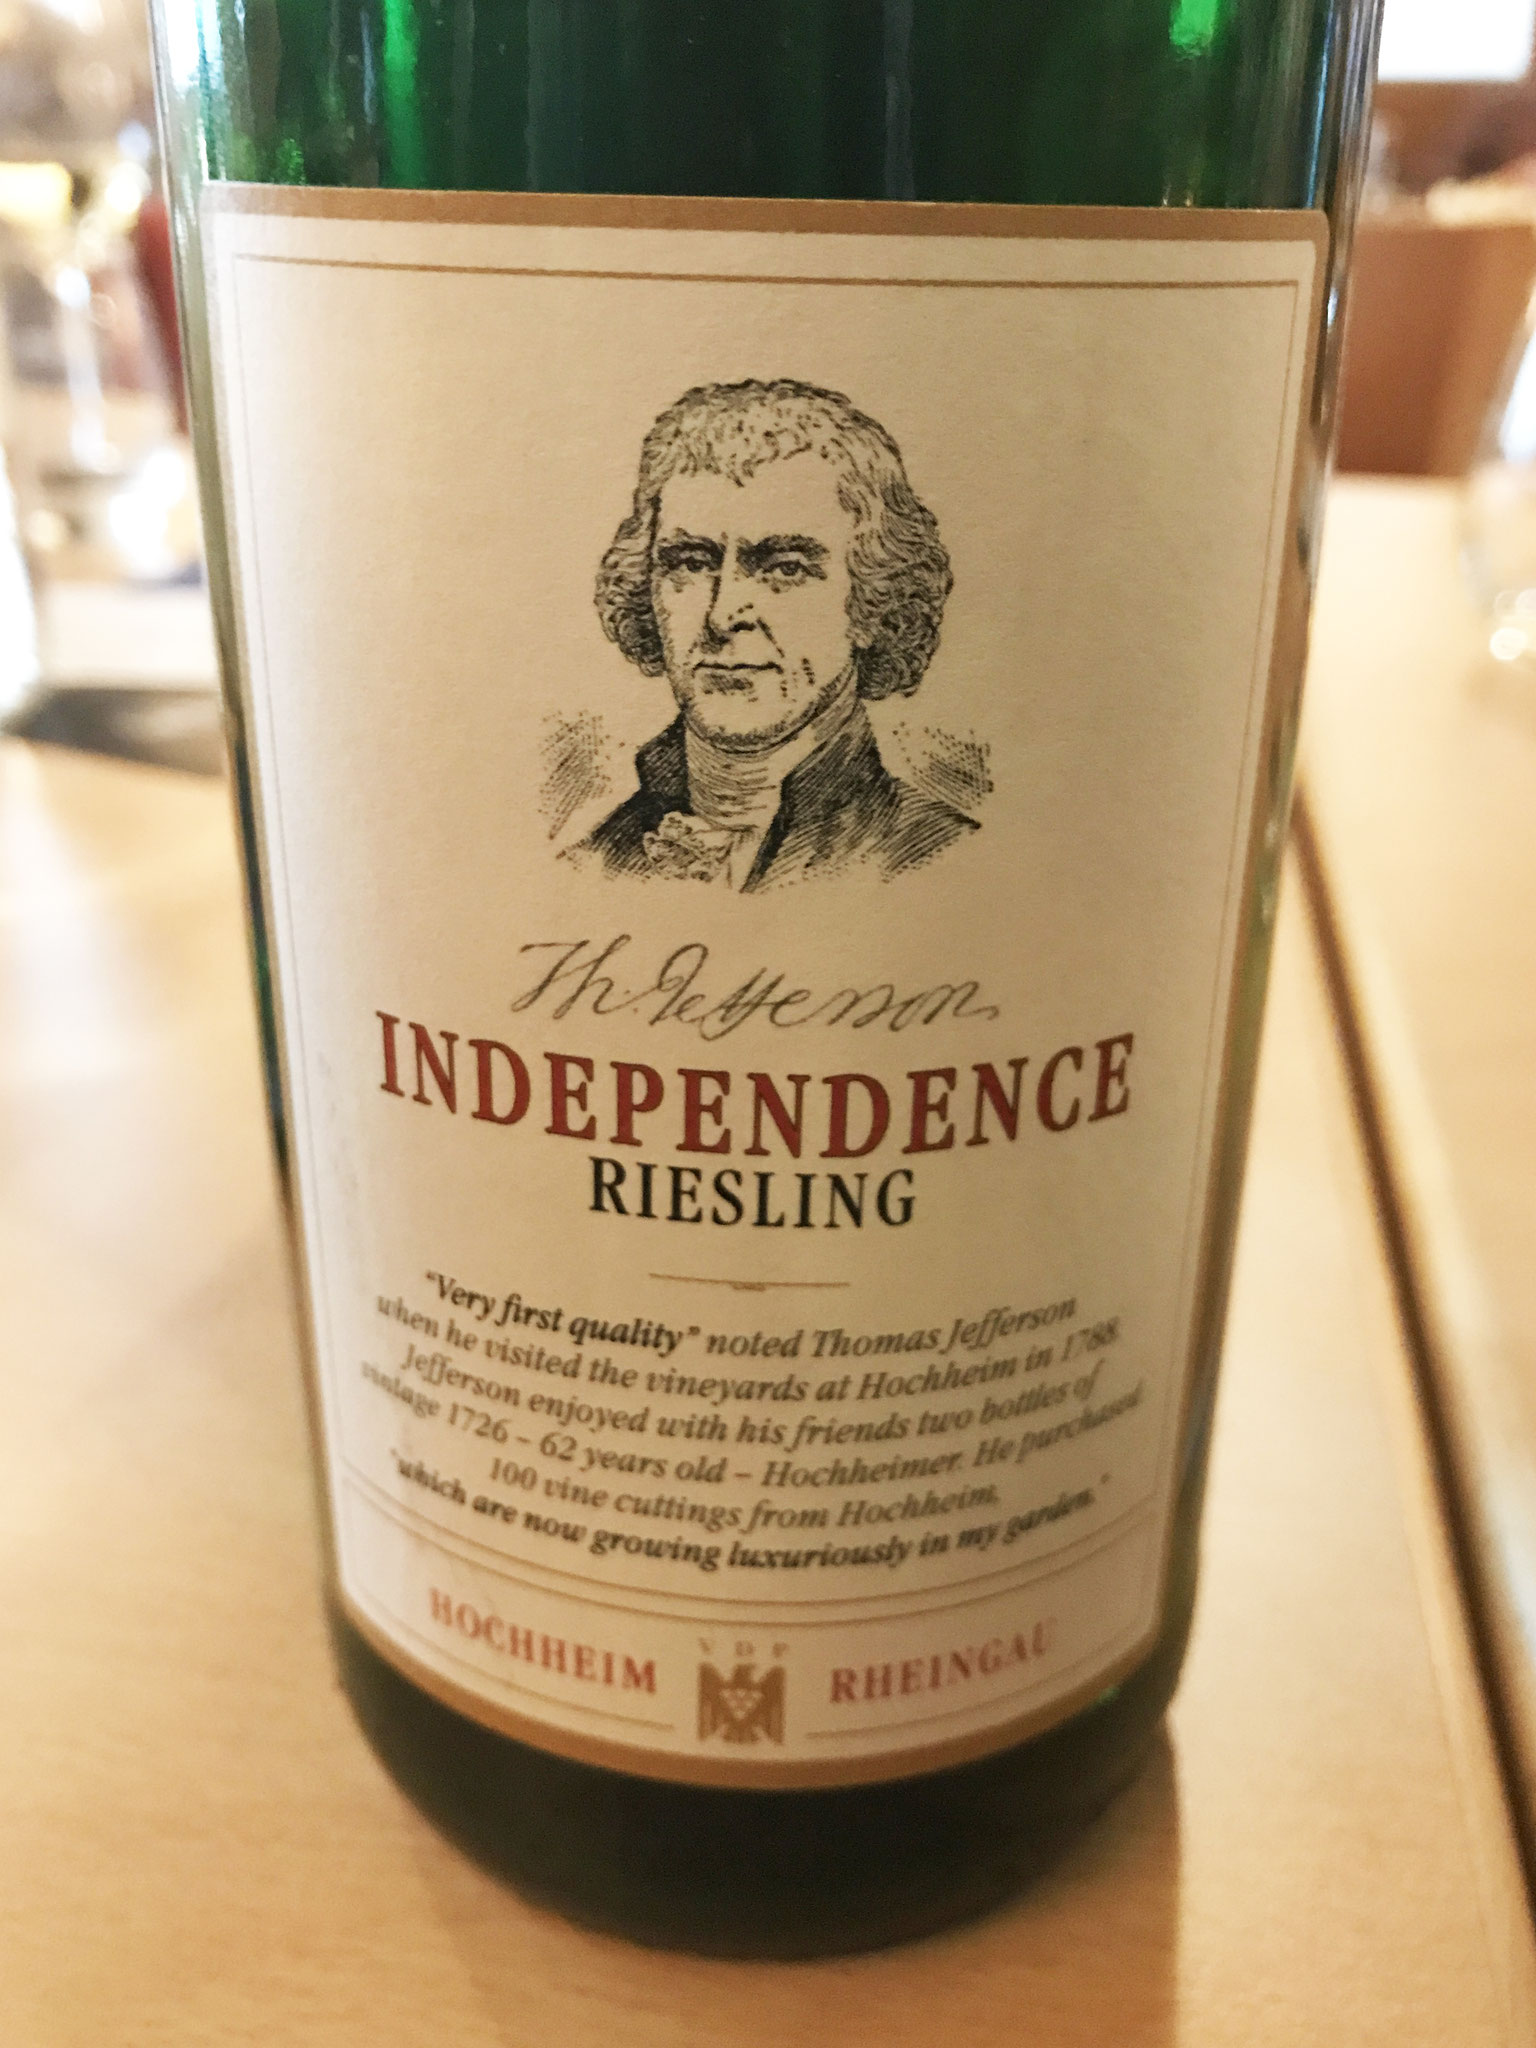 The Jefferson Independence Riesling from Hochheim